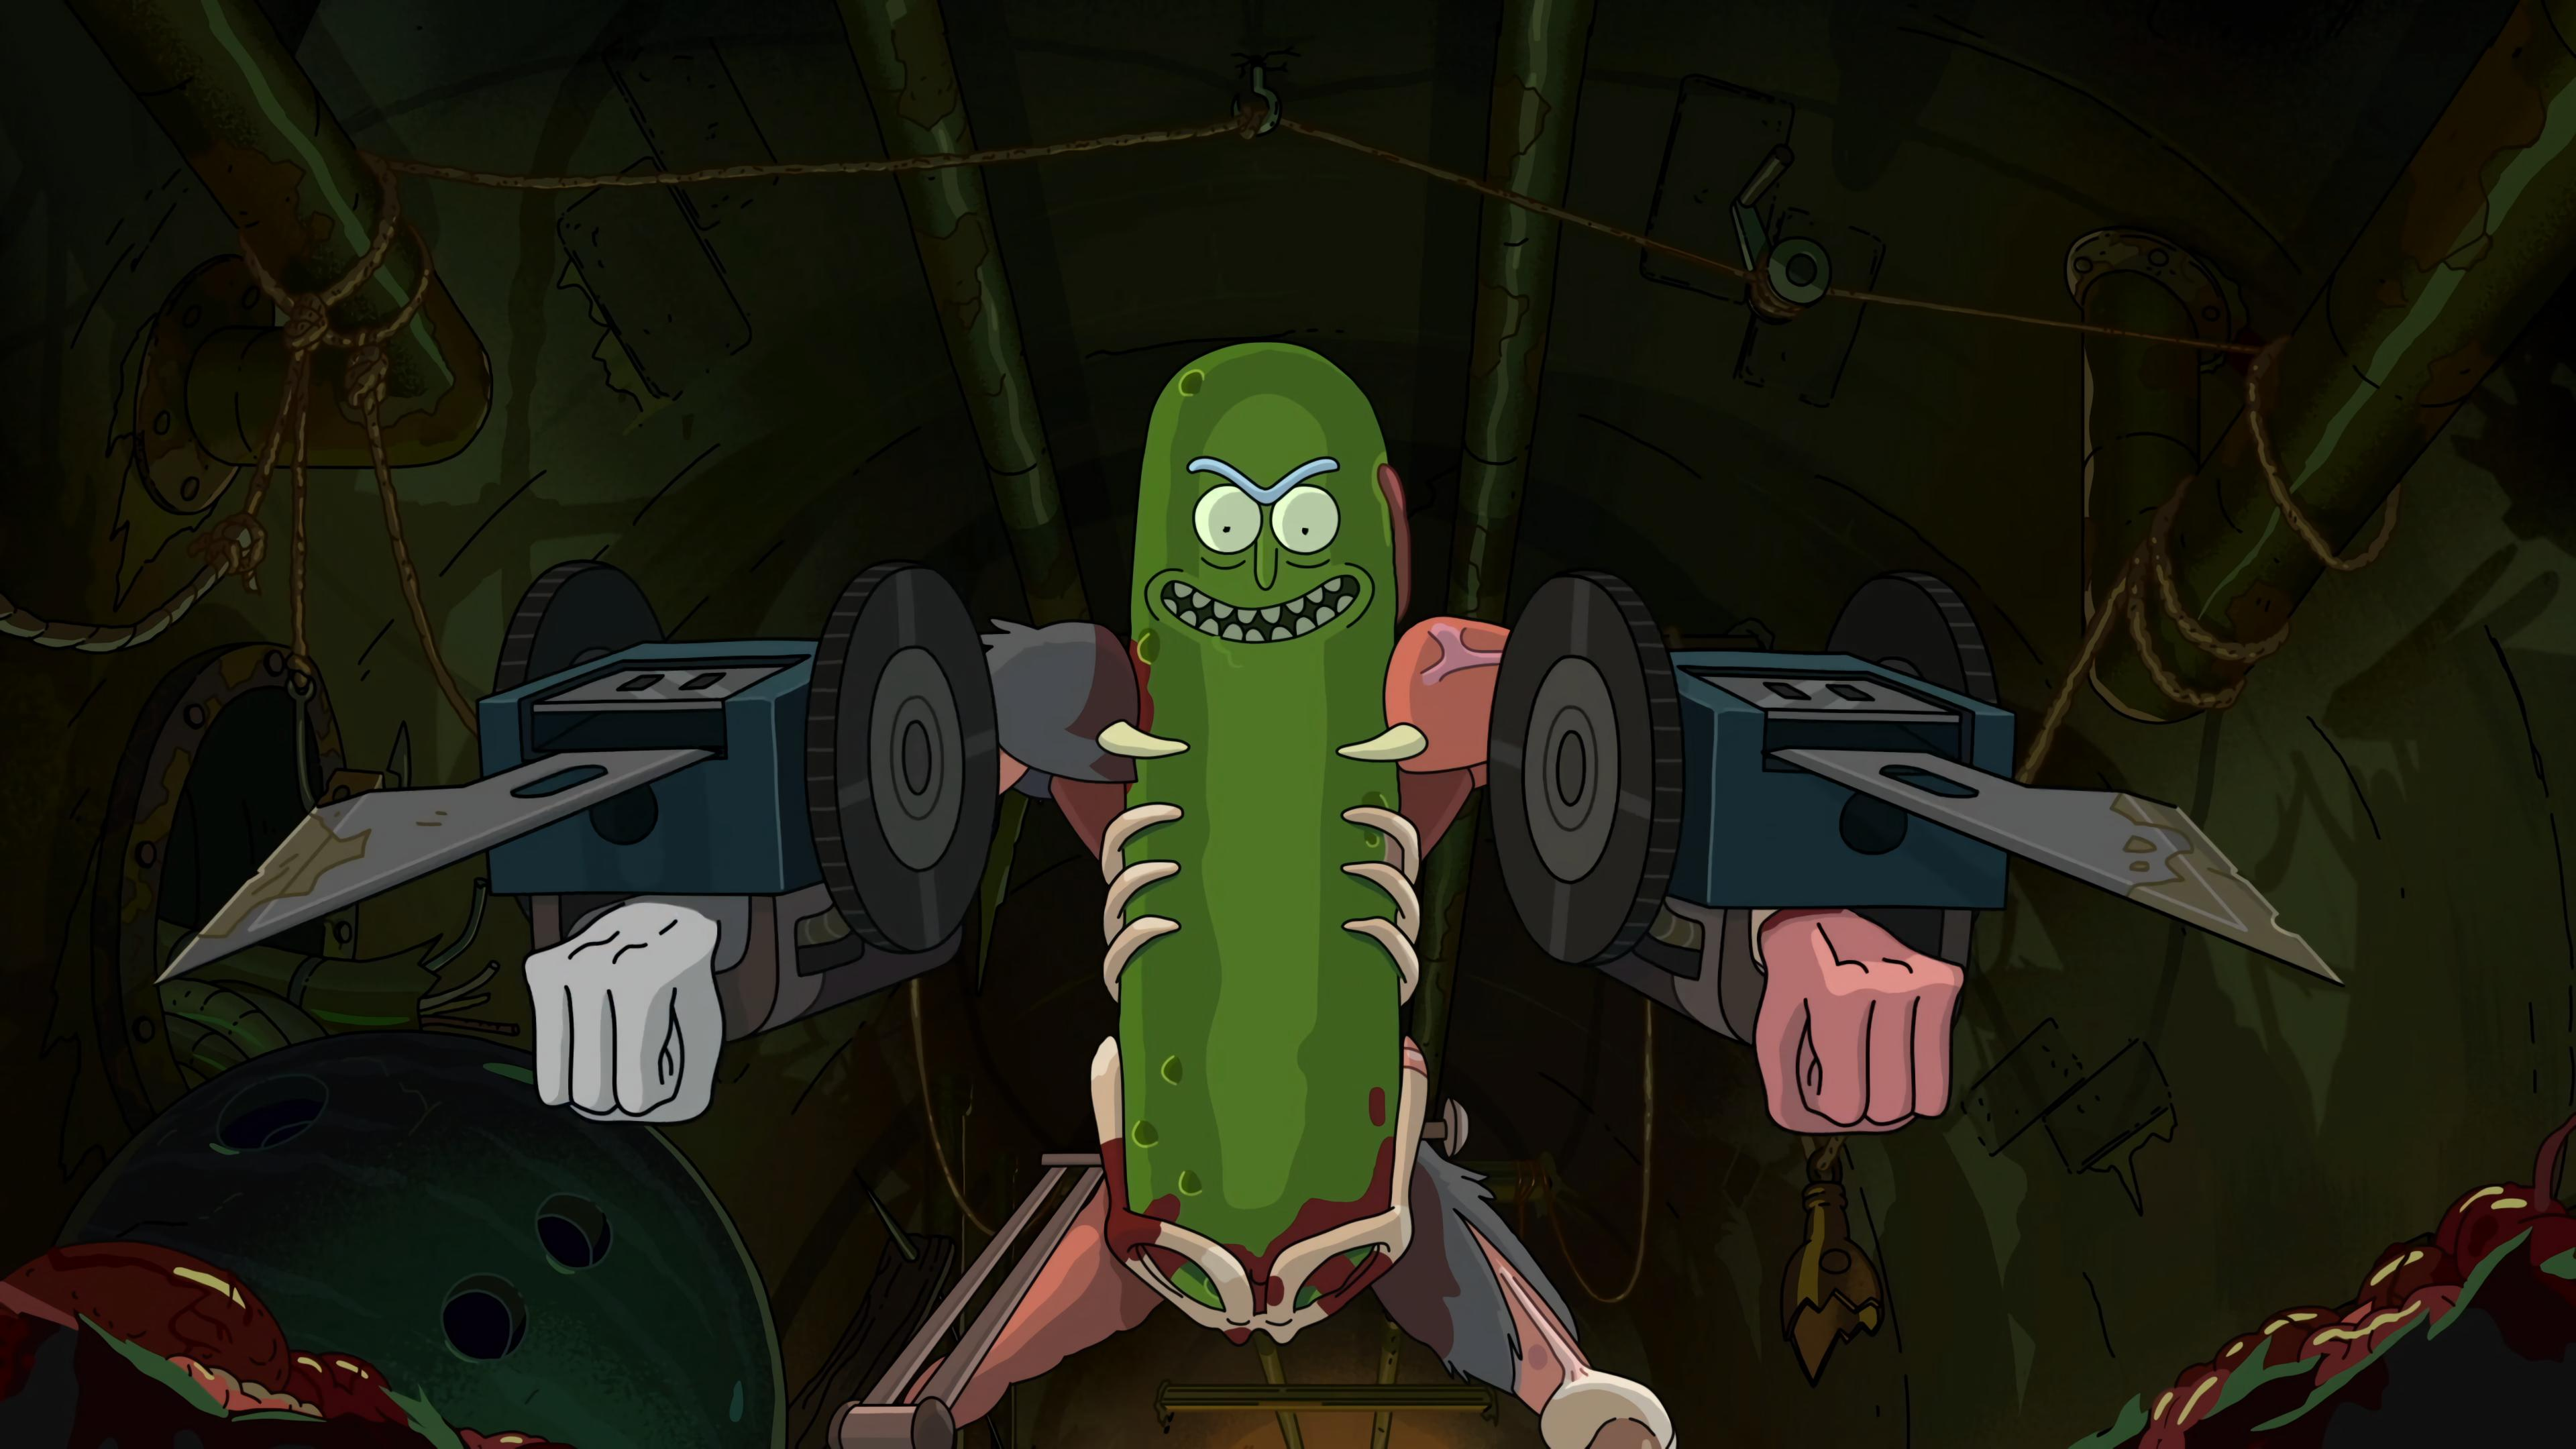 3840x2160 4K Pickle Rick Wallpaper (upscaled from FHD with waifu2x) : rickandmorty